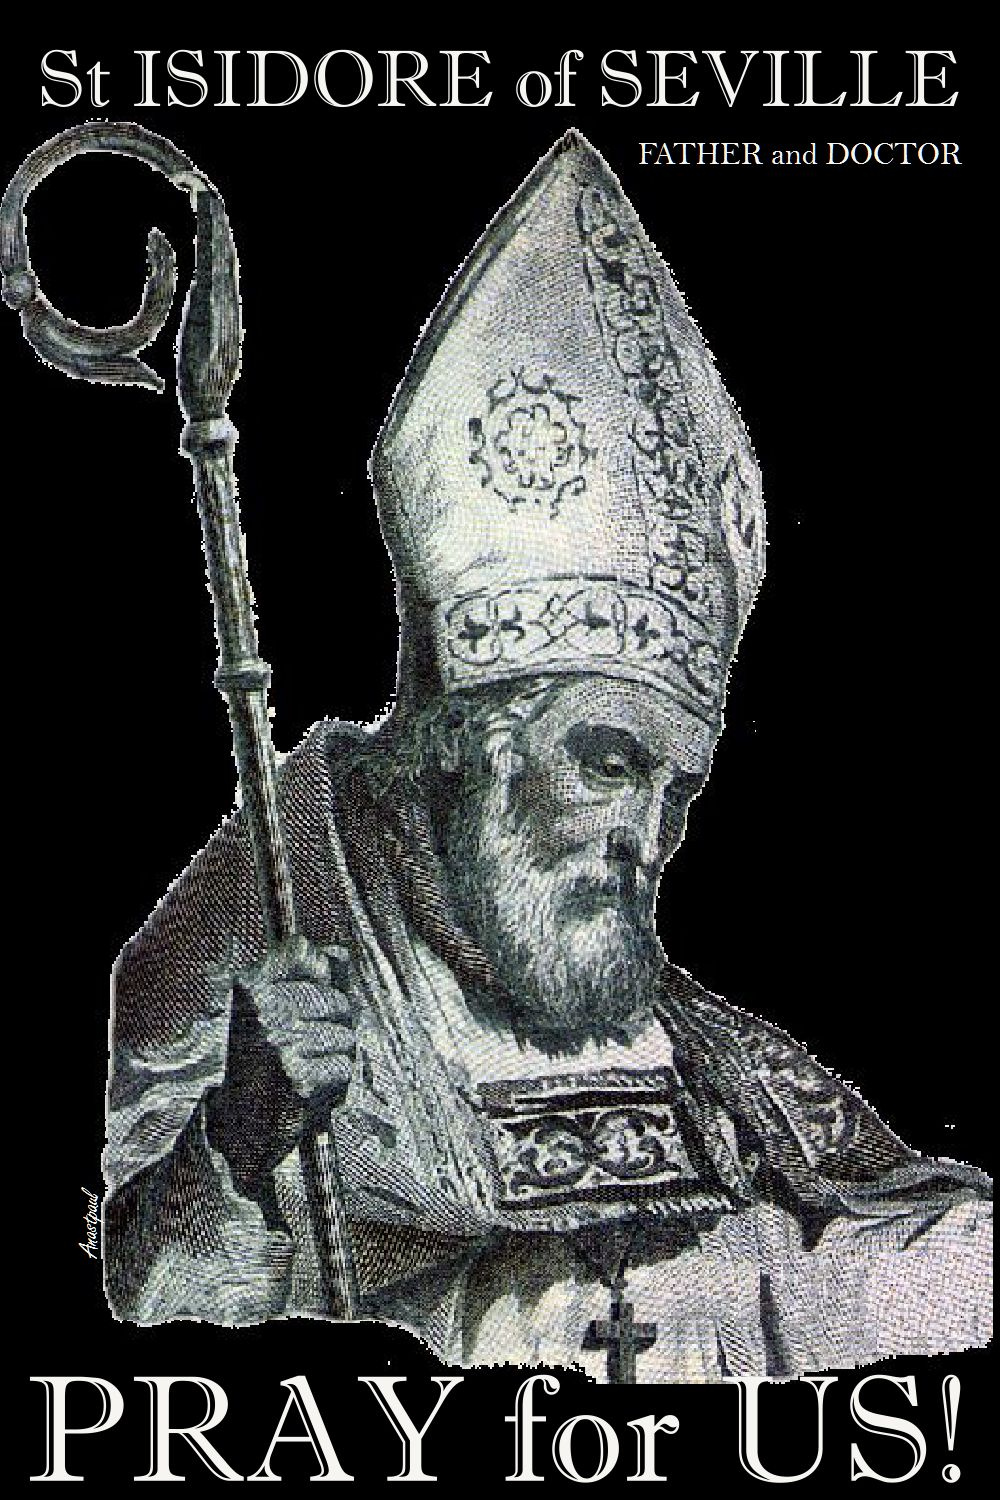 ST ISIDORE PRAY FOR US